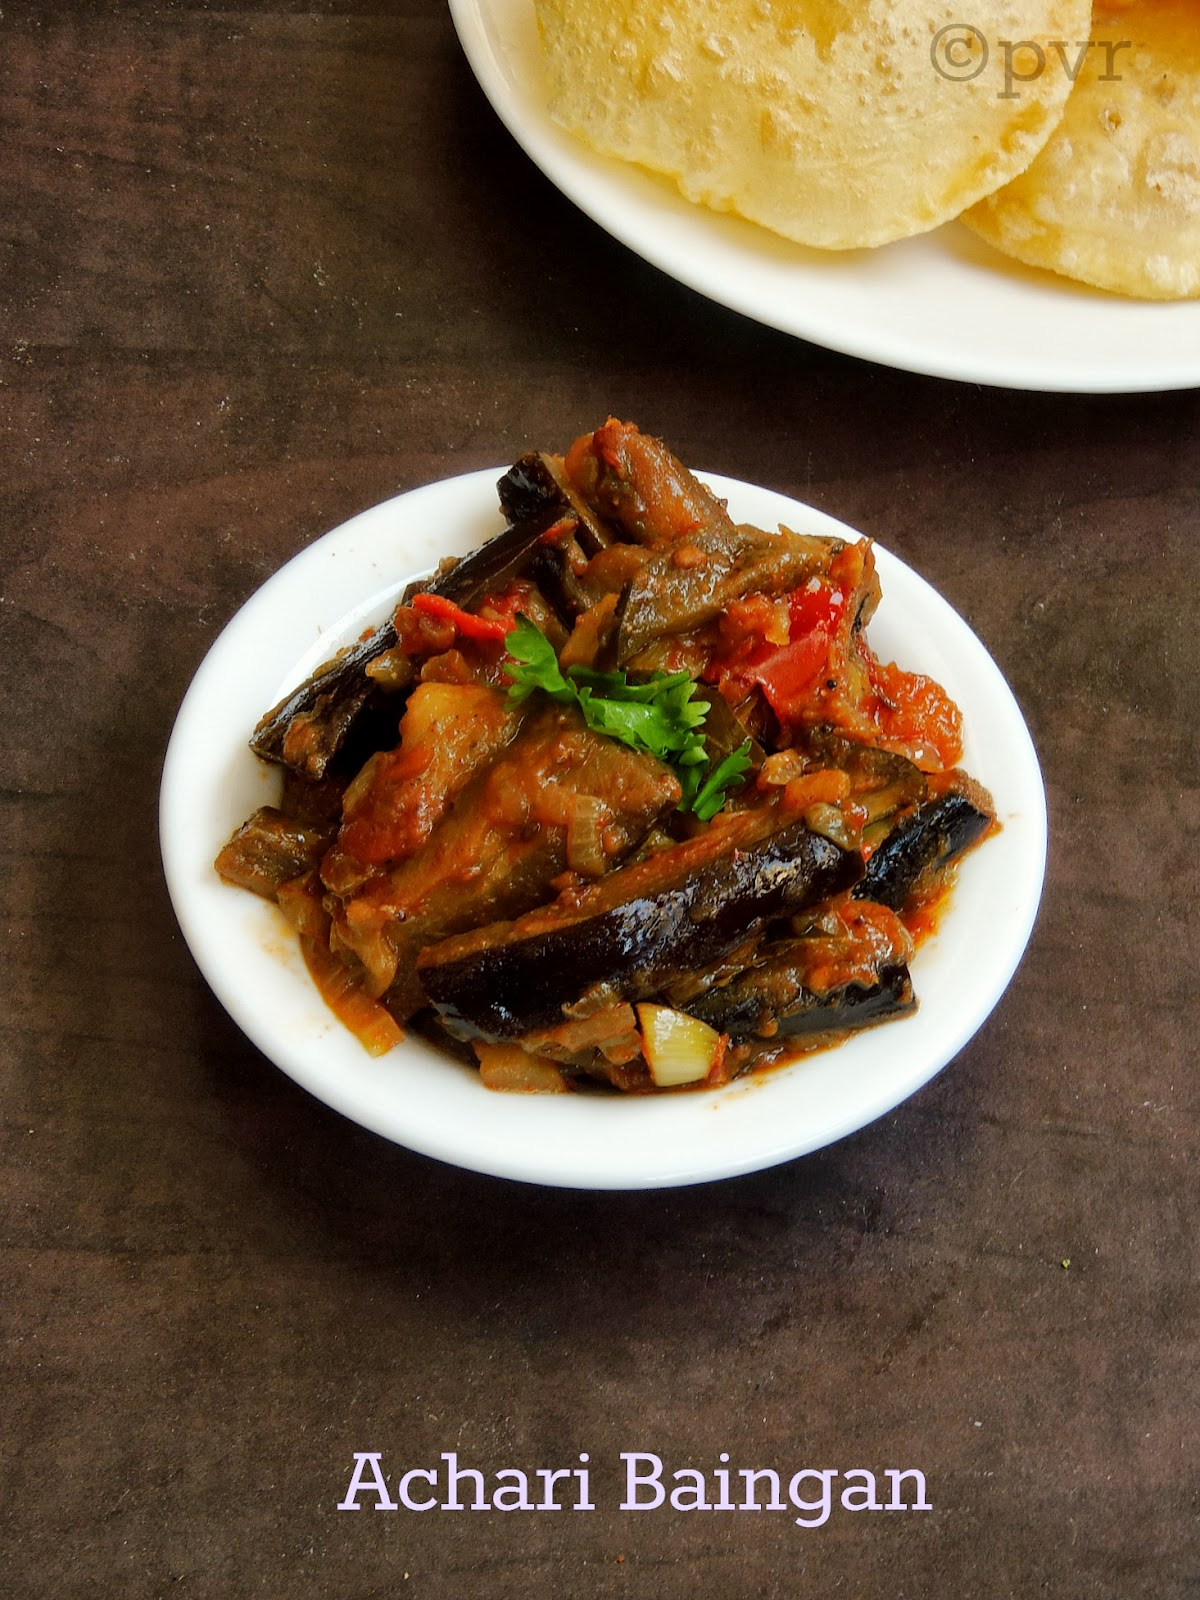 Priya's Versatile Recipes: Achari Baingan/Eggplant with Pickled Spices